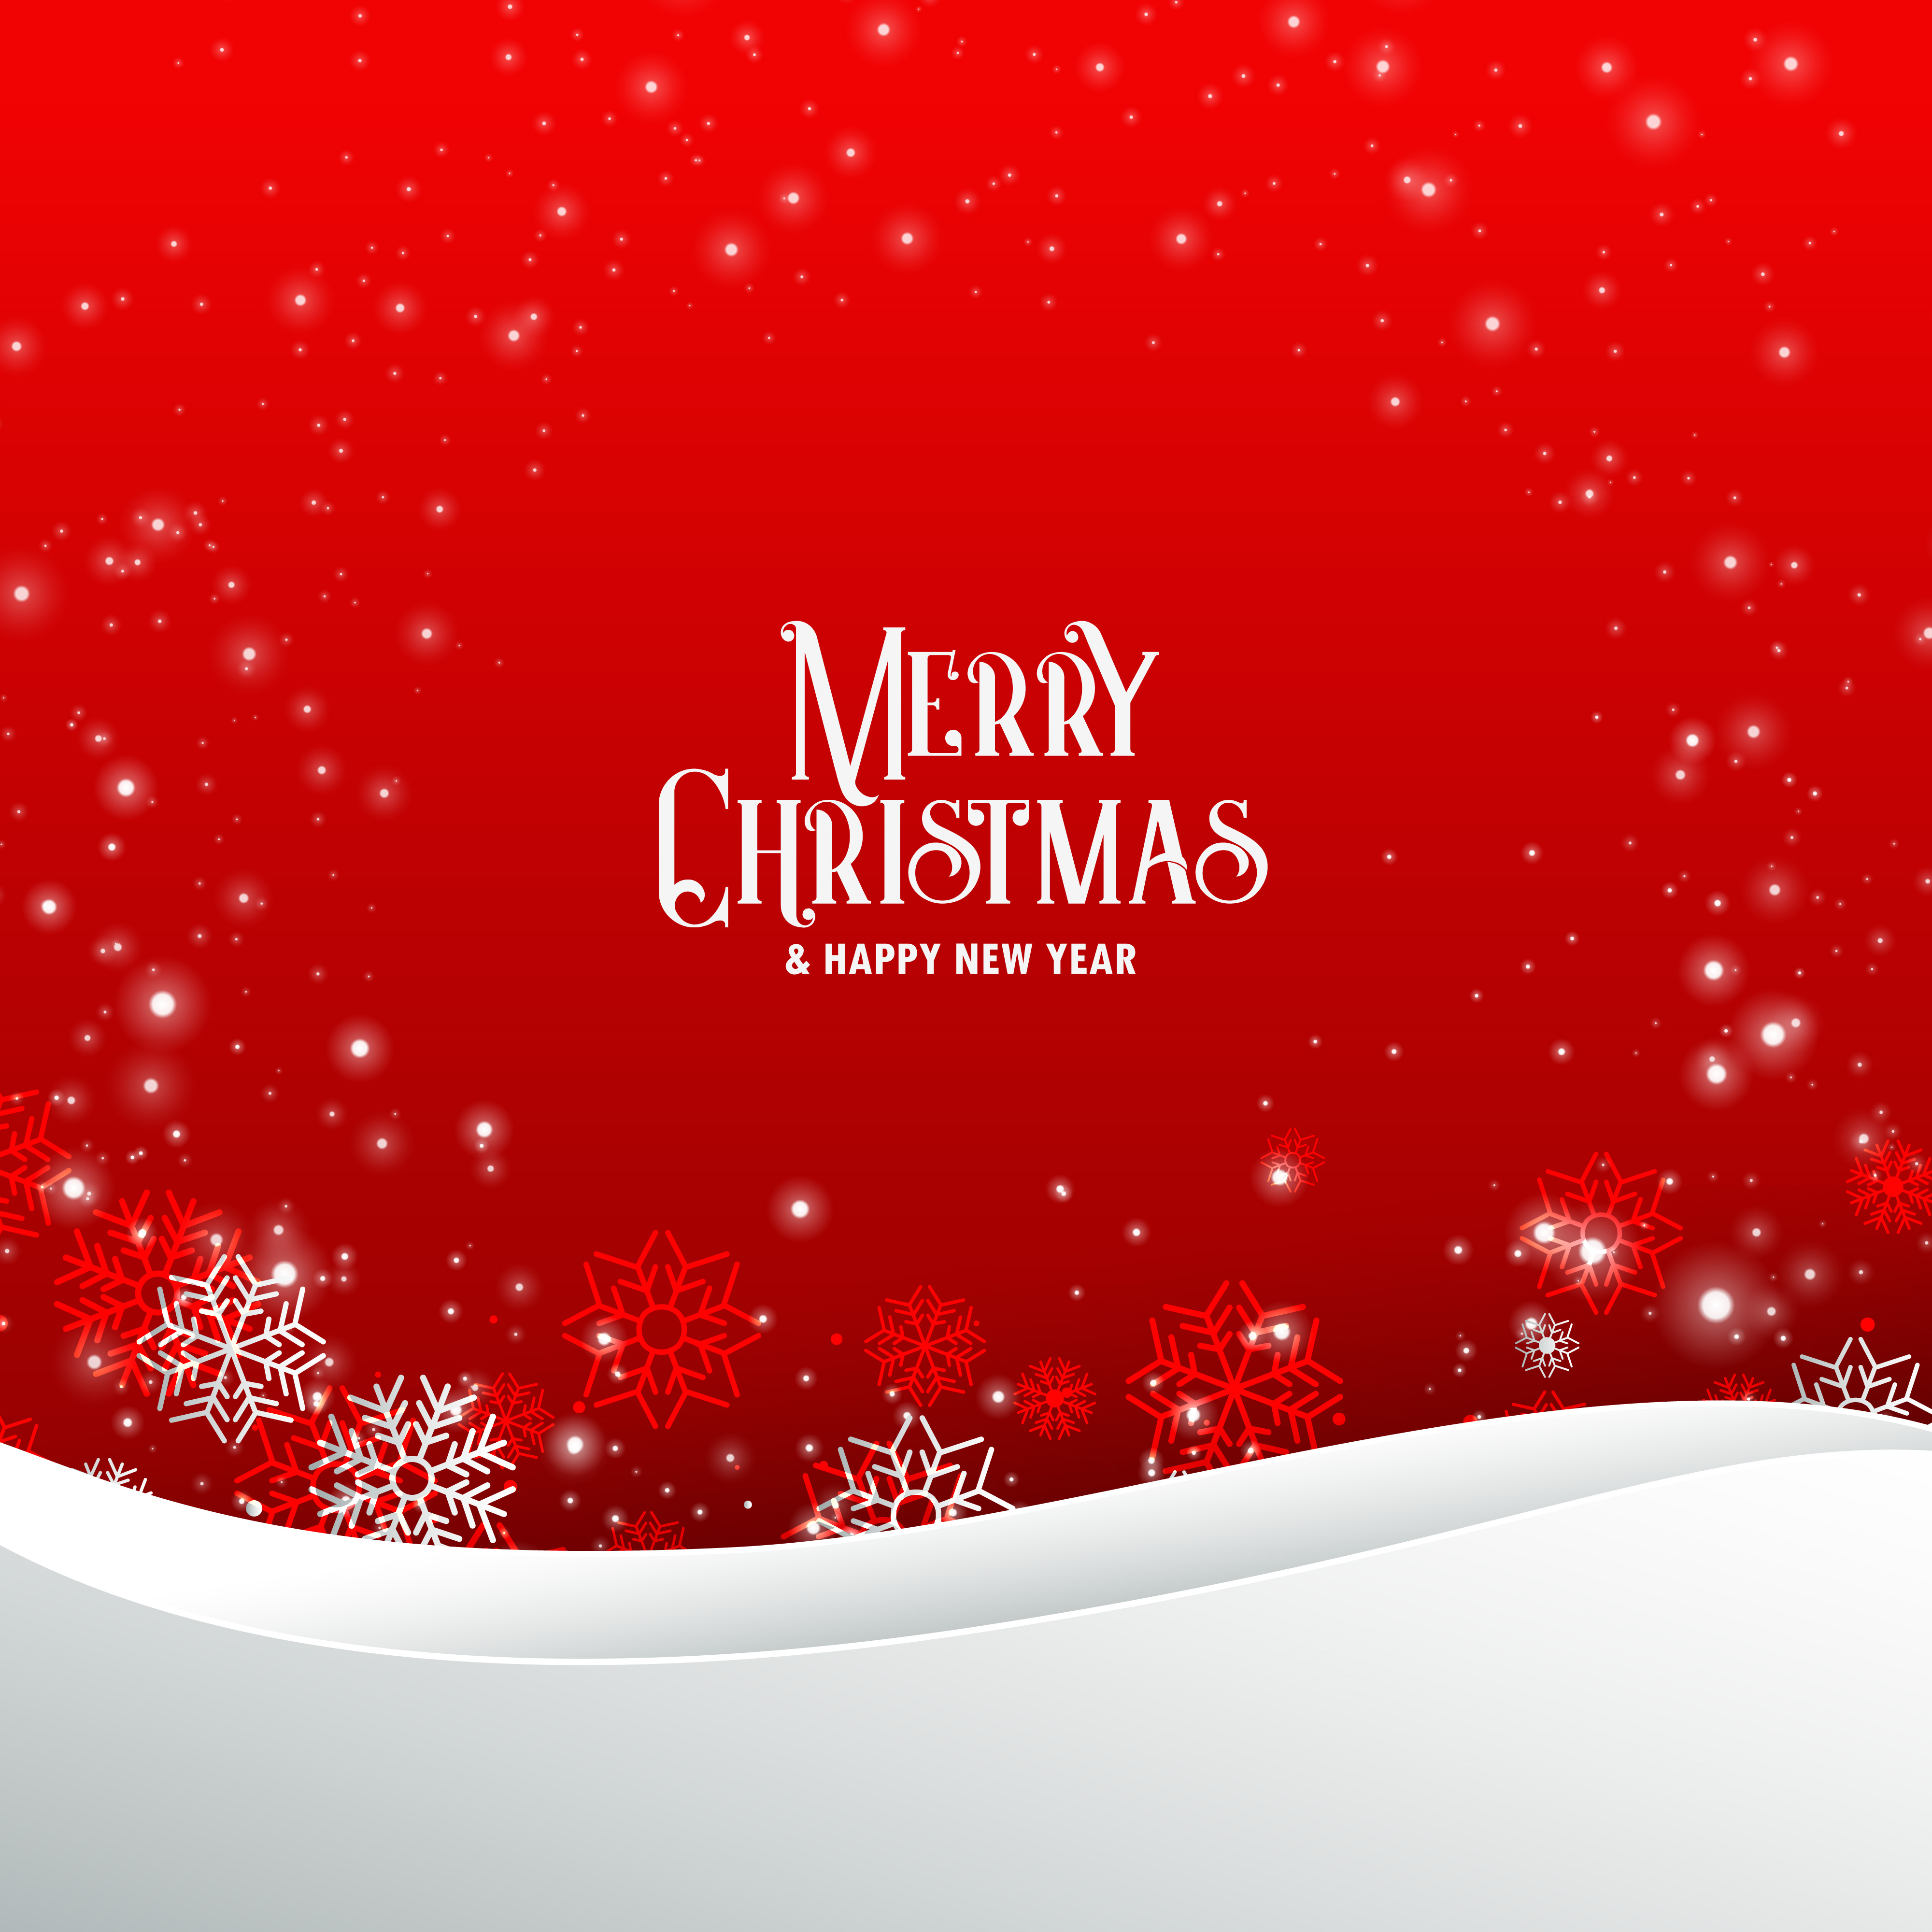 Elegant Red Merry Christmas Greeting Background With Snowflakes